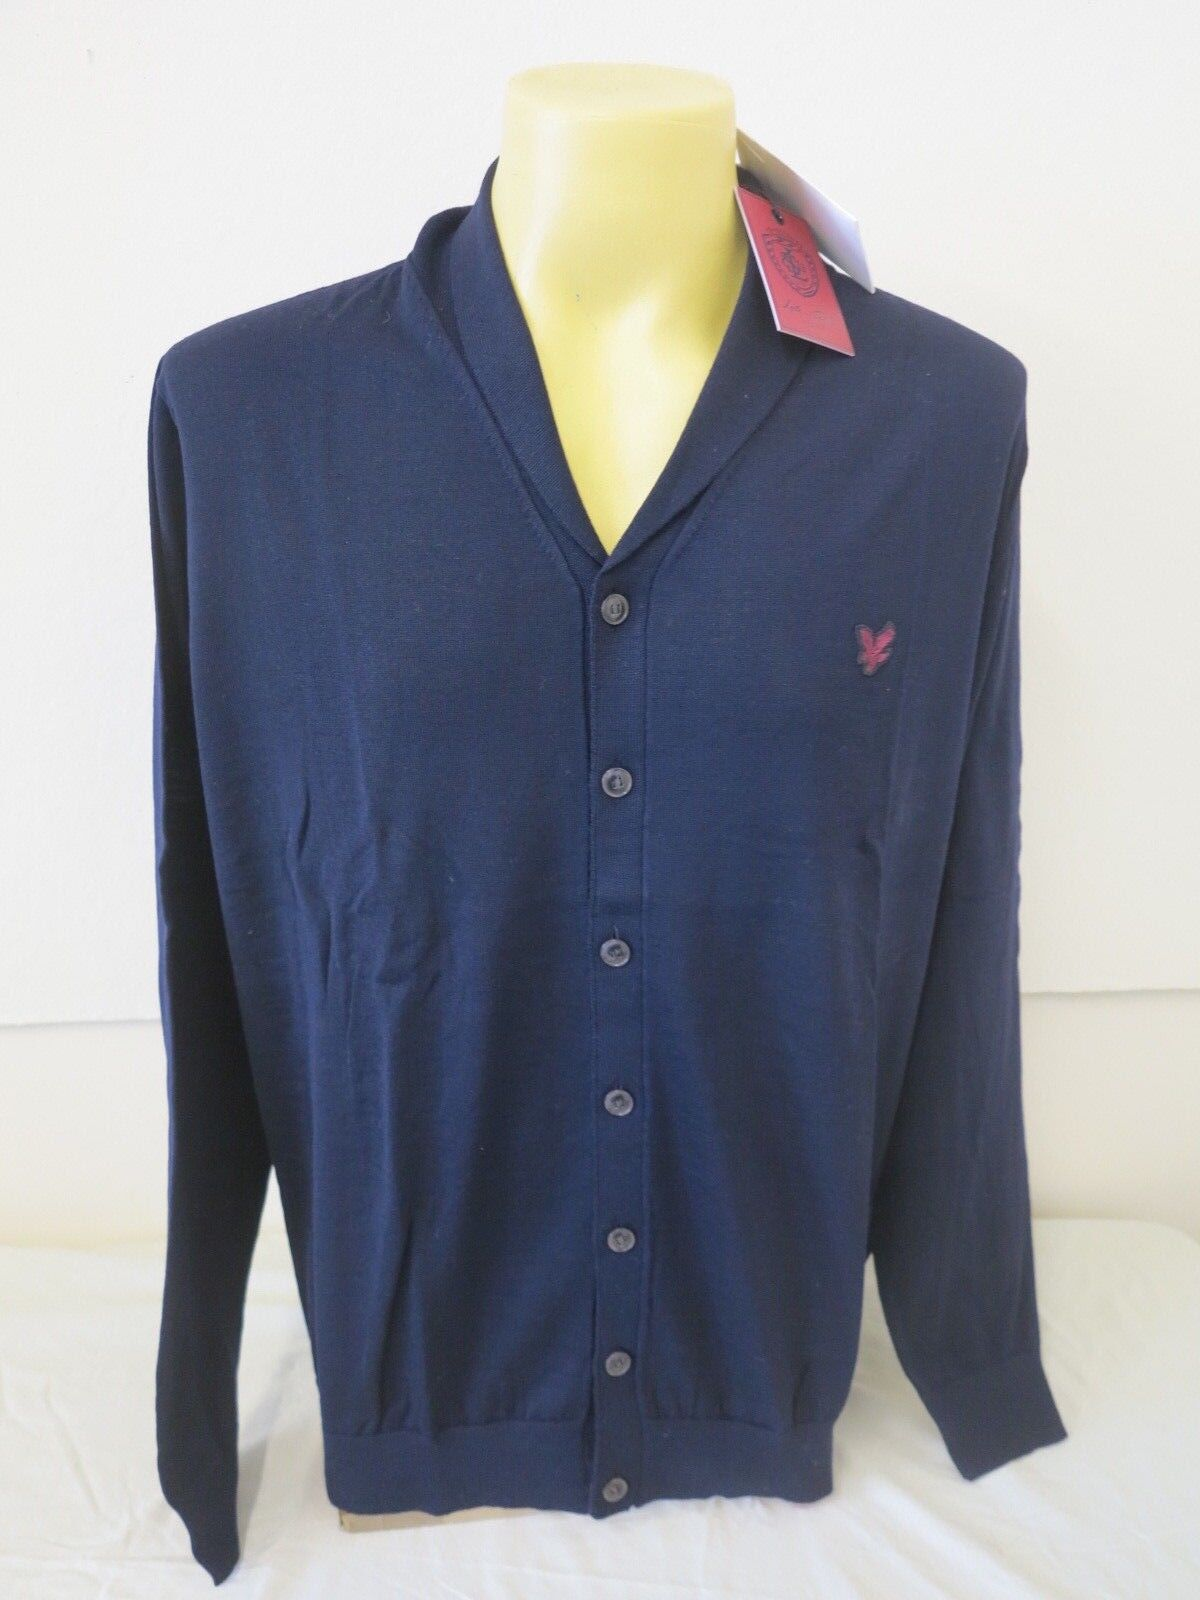 LYLE & SCOTT HERITAGE SHAWL COLLAR CARD NAVY MADE IN ITALY XL 100% EXTRAFINE 47